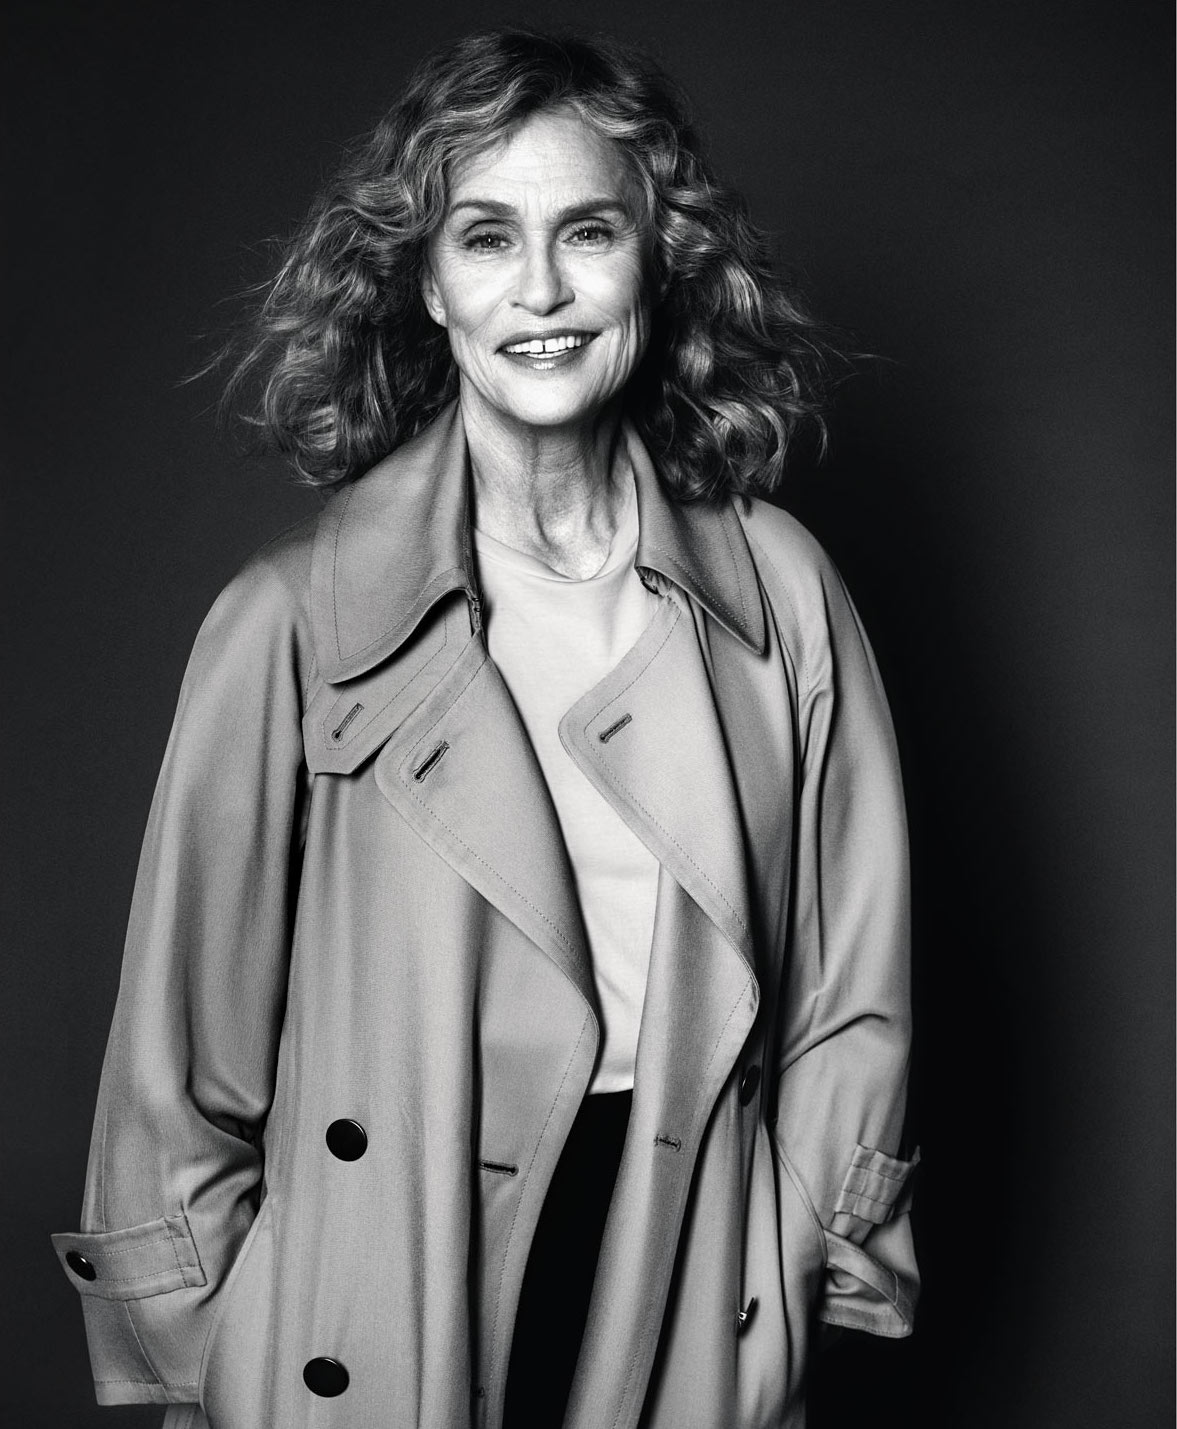 Lauren Hutton by Vanina Sorrenti for Porter Mag 31 (9).jpg